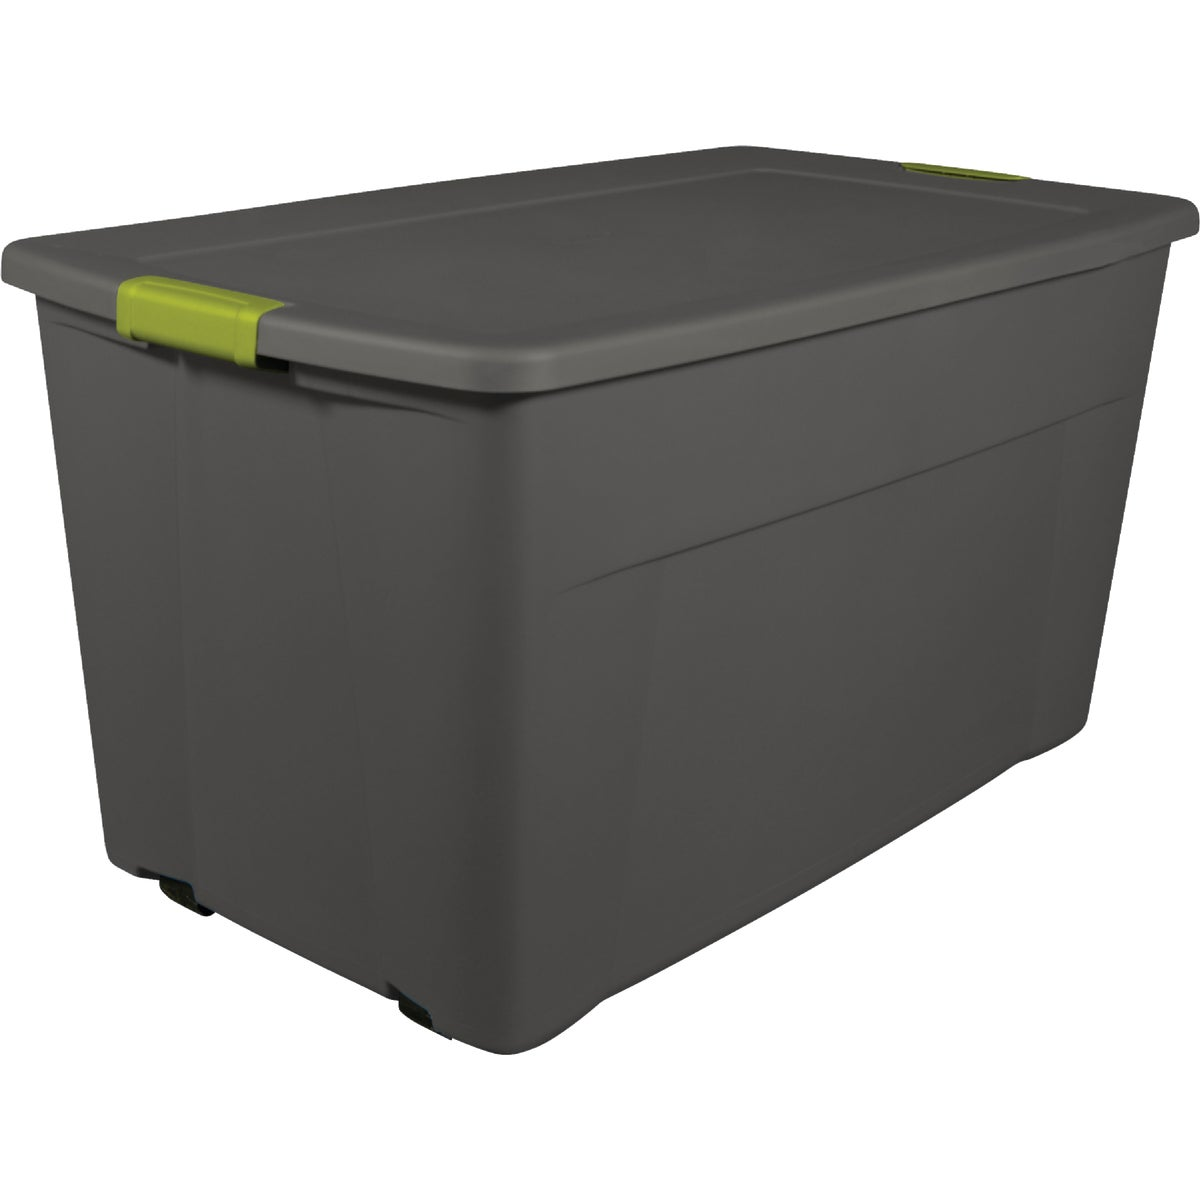 45 GALLON TOTE BOX - 19483V04 by Sterilite Corp